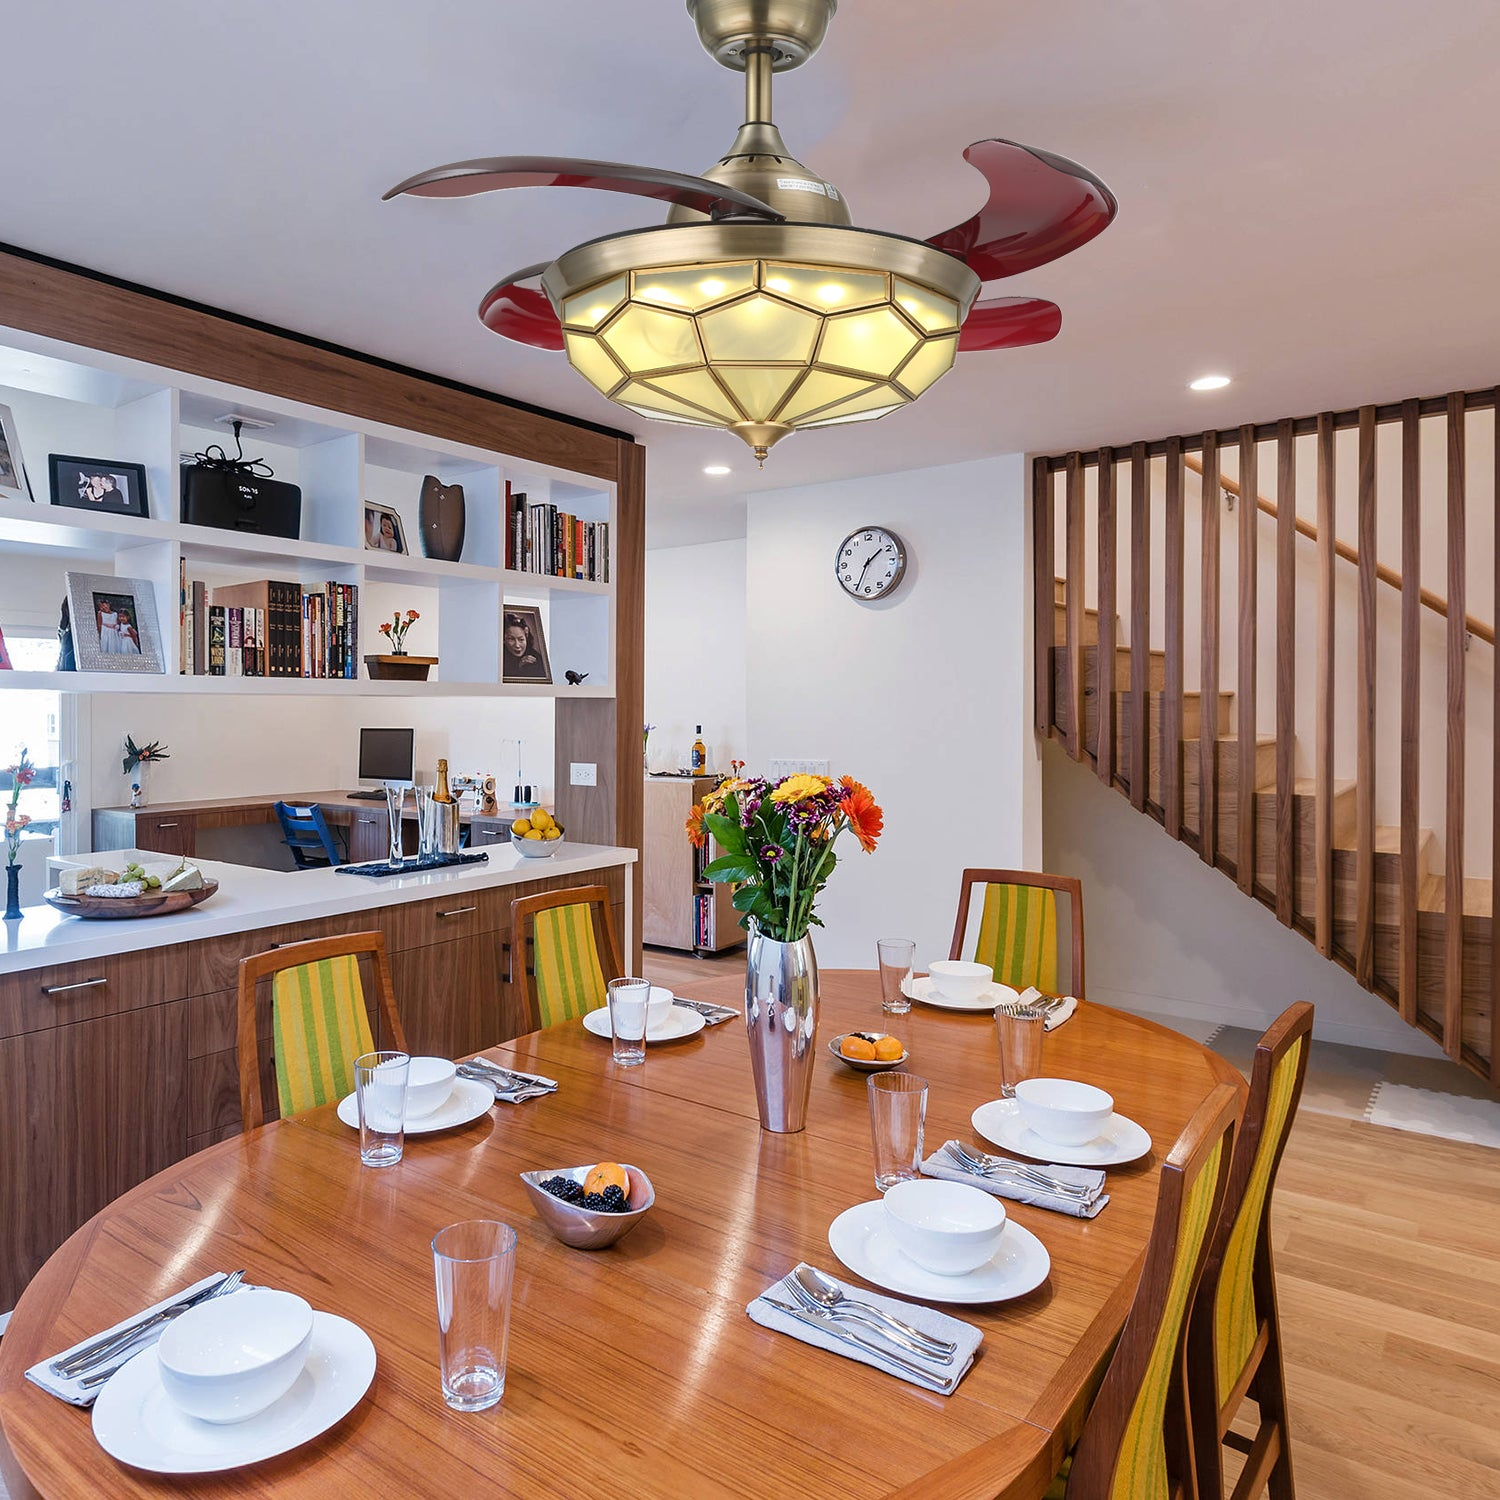 Delightful Invisible Ceiling Fan With Bronze Design   Dining Room